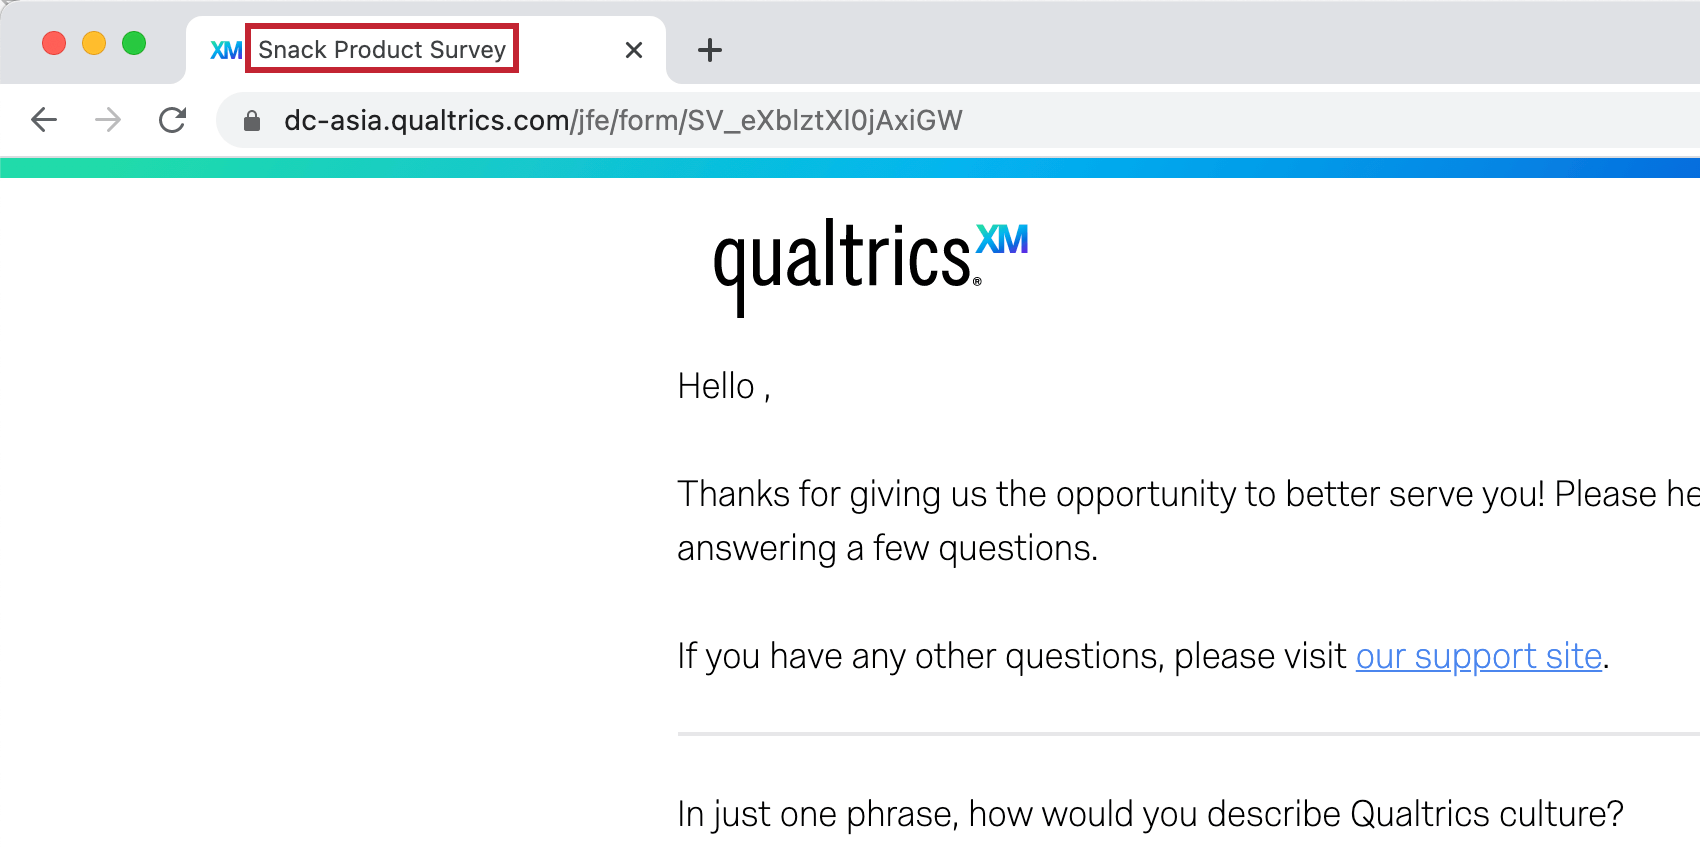 Showing the display name at the top of the survey browser